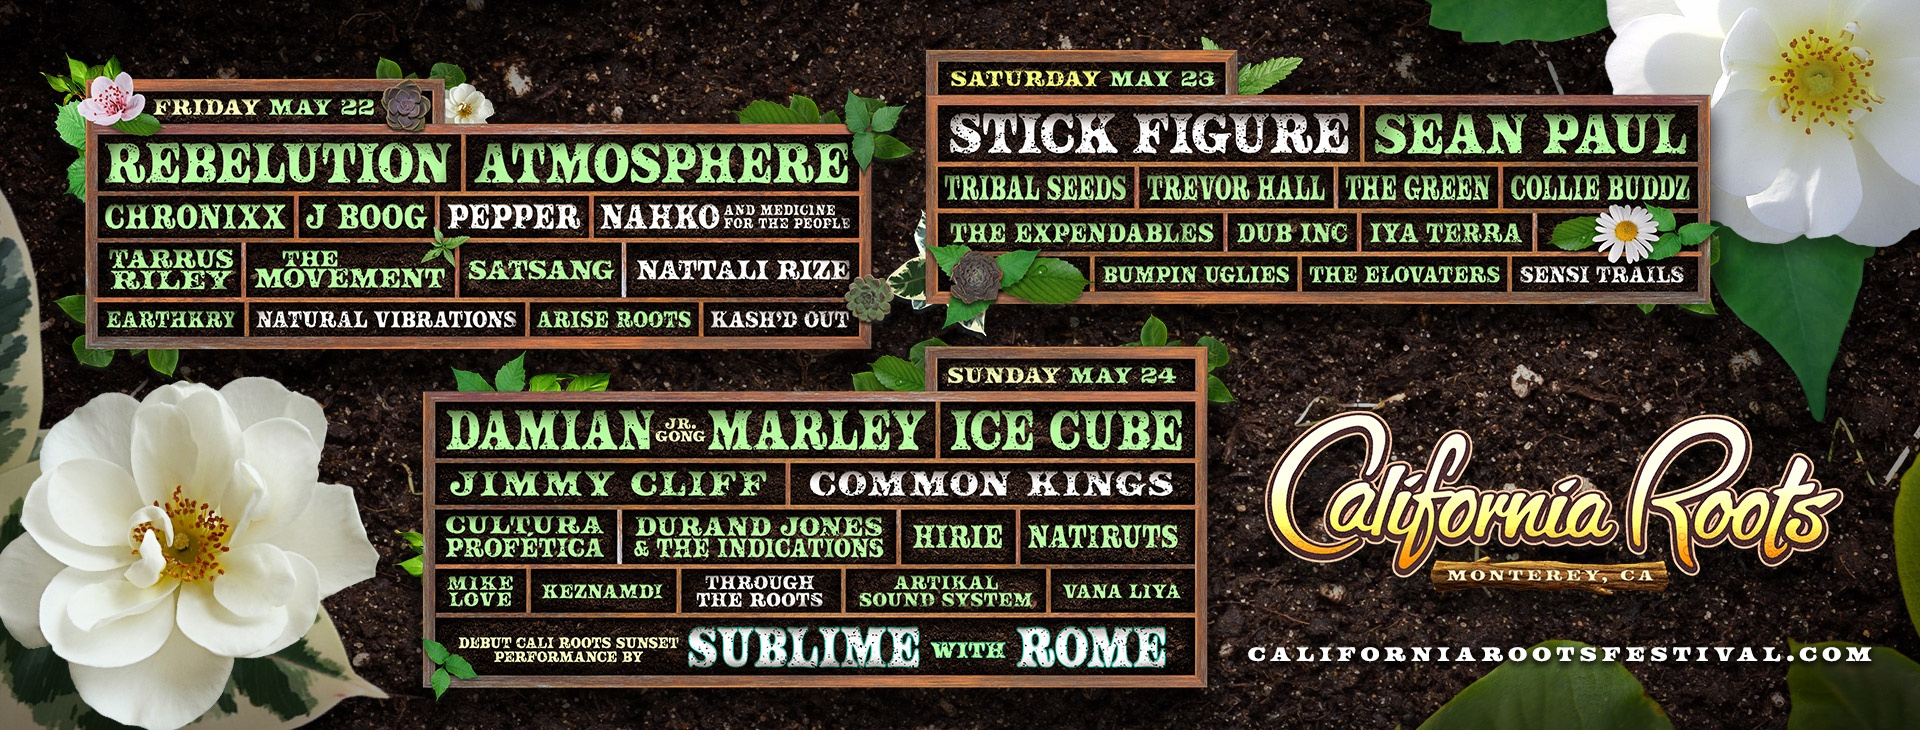 The California Roots Music and Arts Festival Announce It's Final Round of Artists for 2020Ice Cube, Atmosphere, and Sean Paul join Lineup